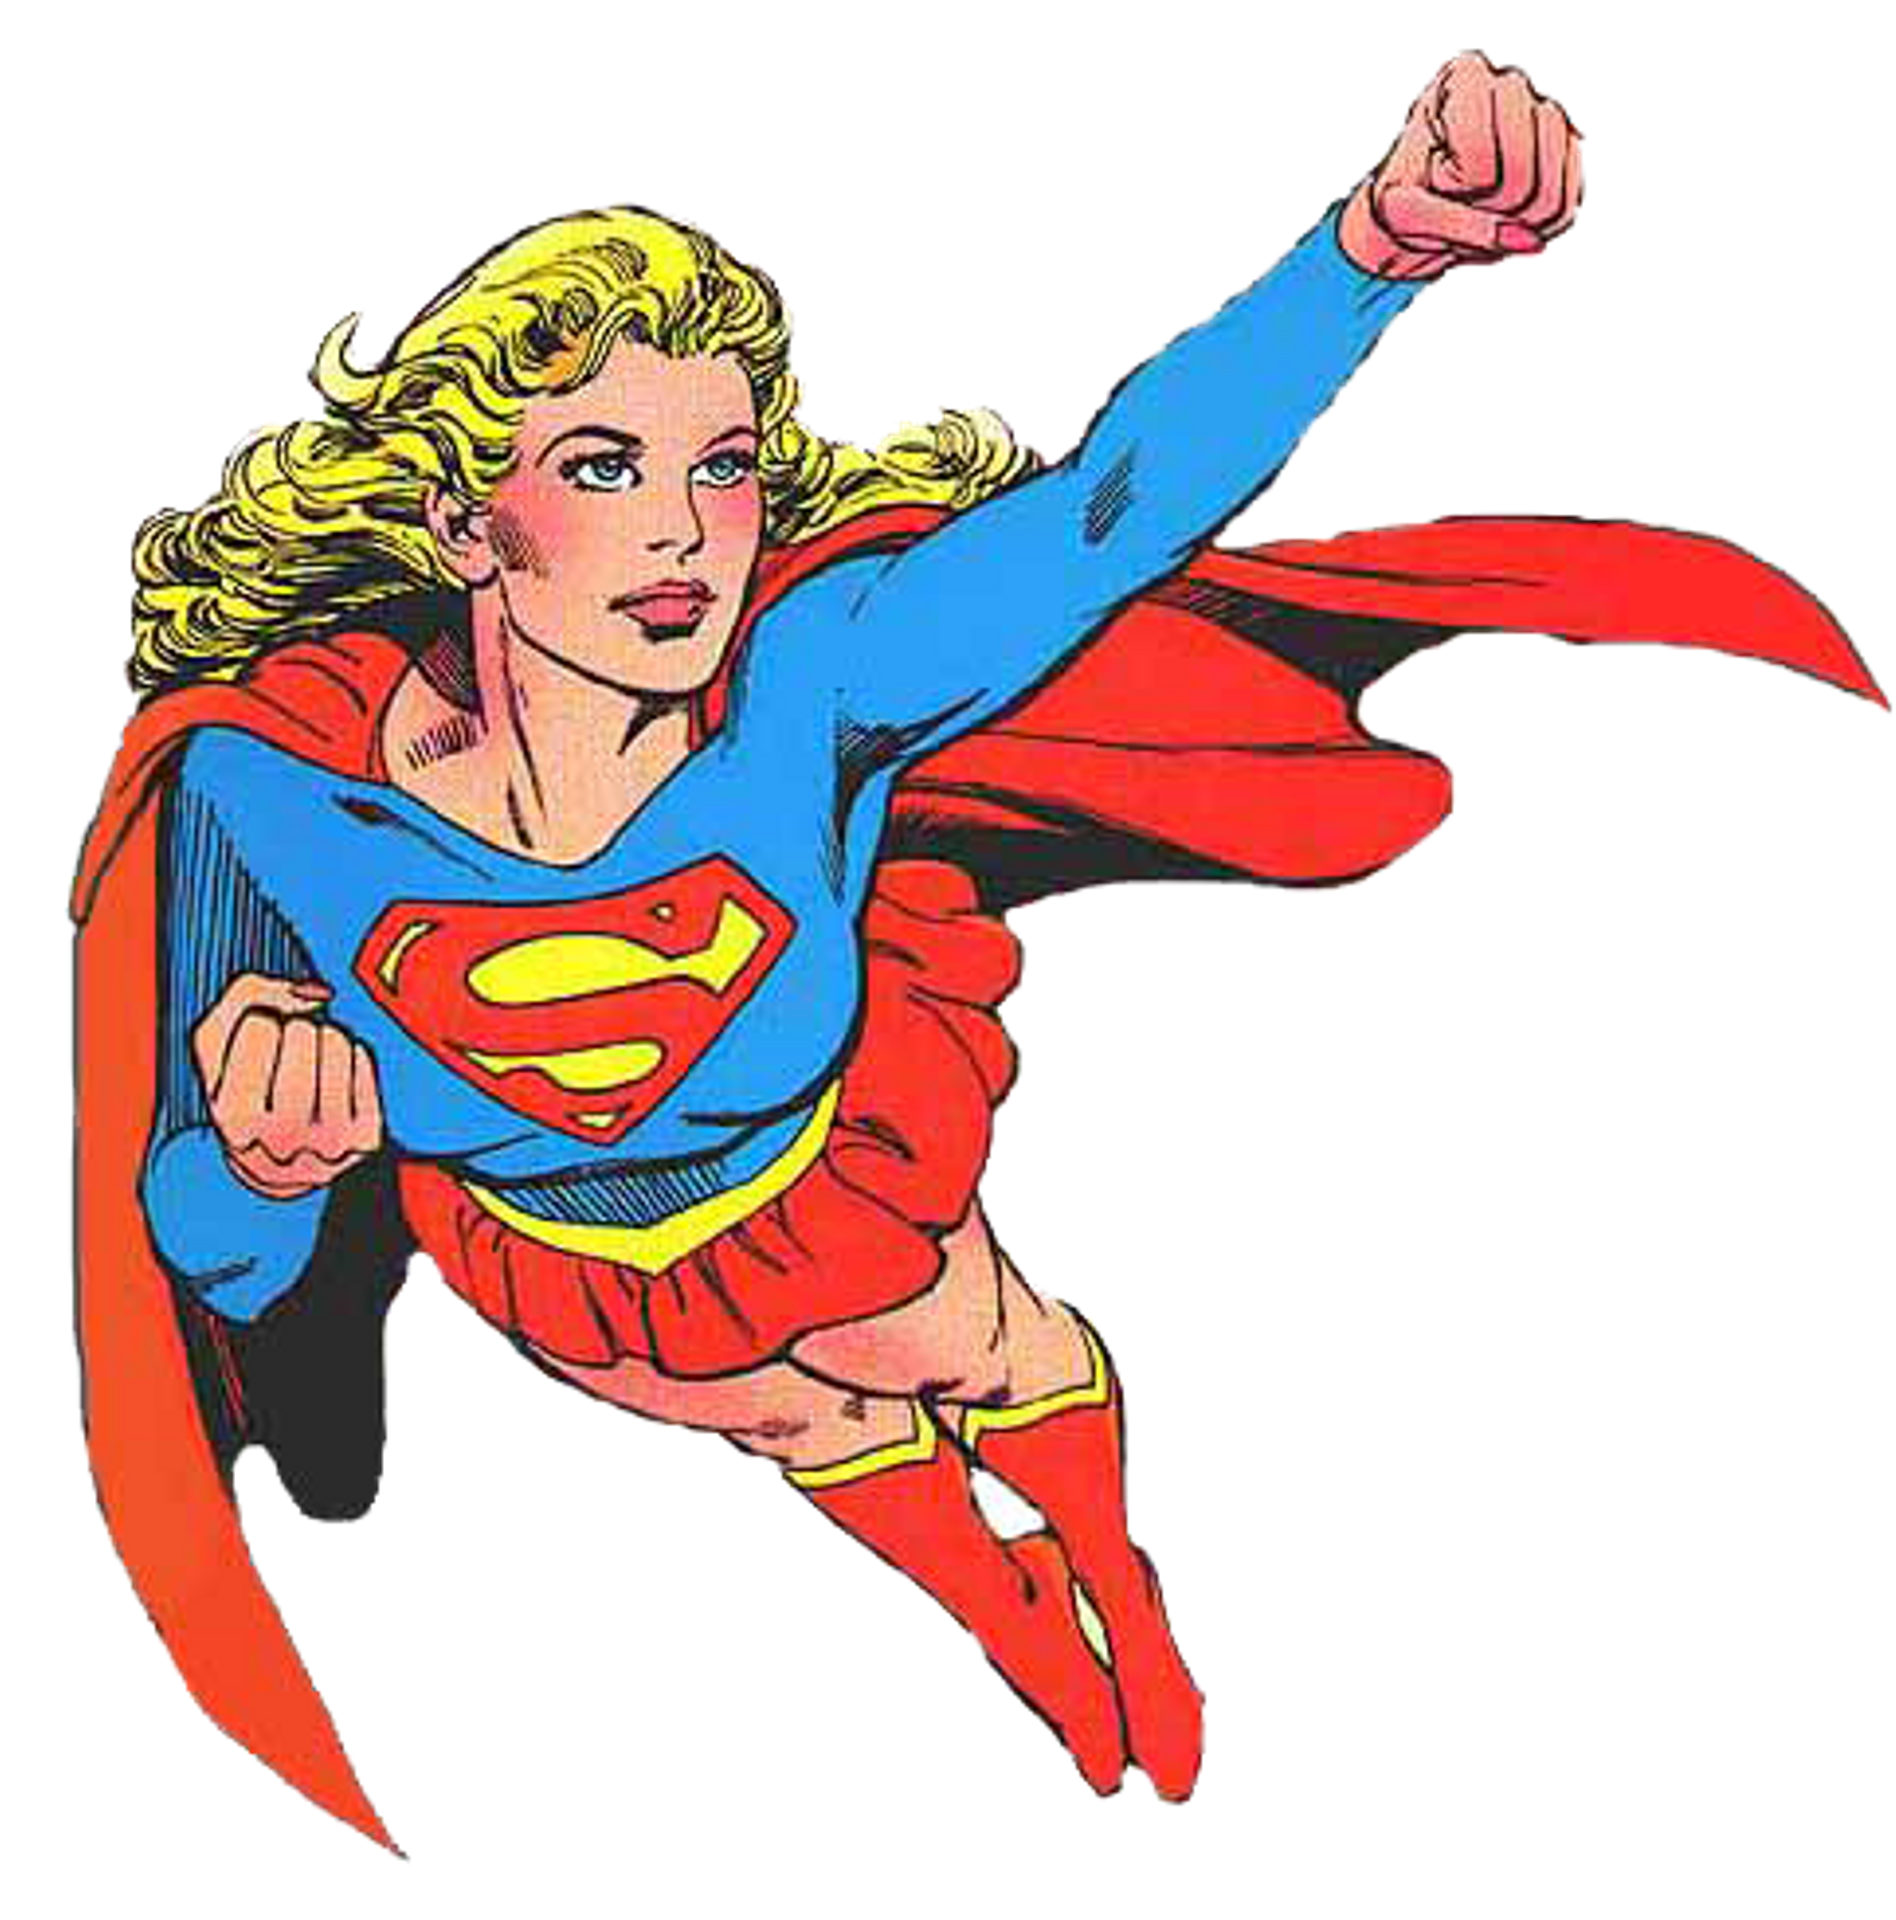 1896x1920 Supergirl Diana Prince Superwoman Comic Book Clip Art